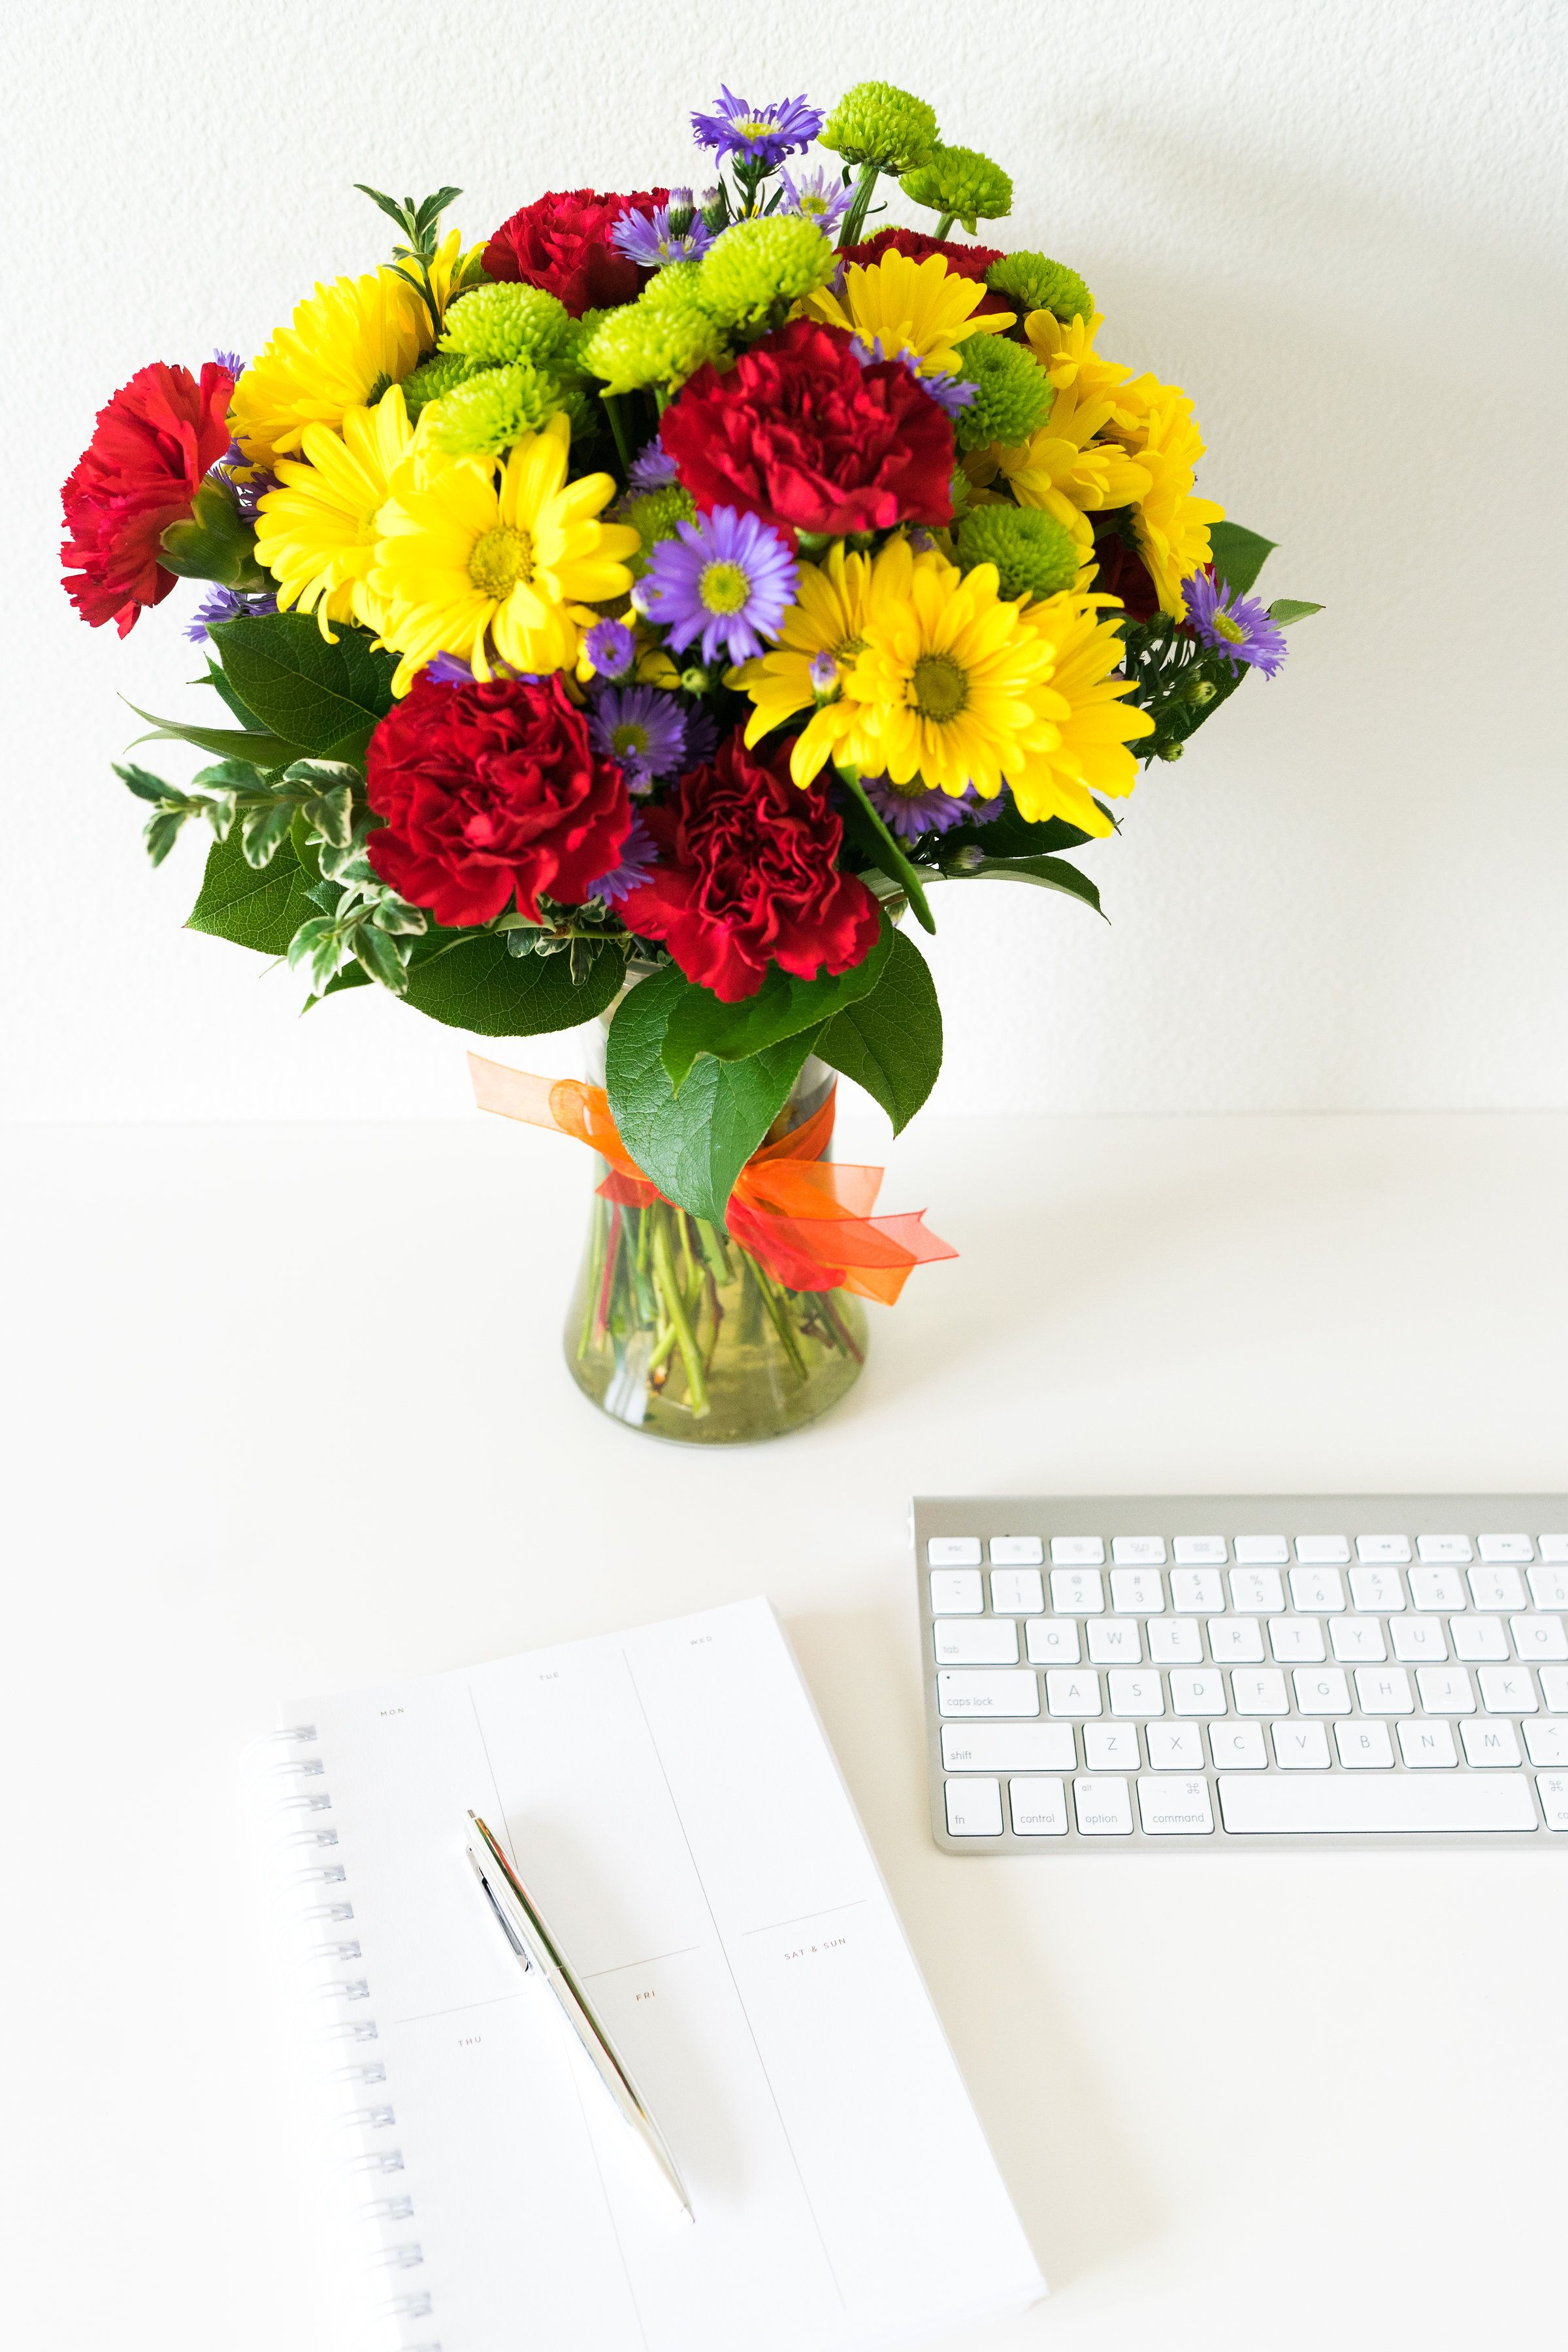 Best Wishes Bouquet at From You Flowers Flowers for you